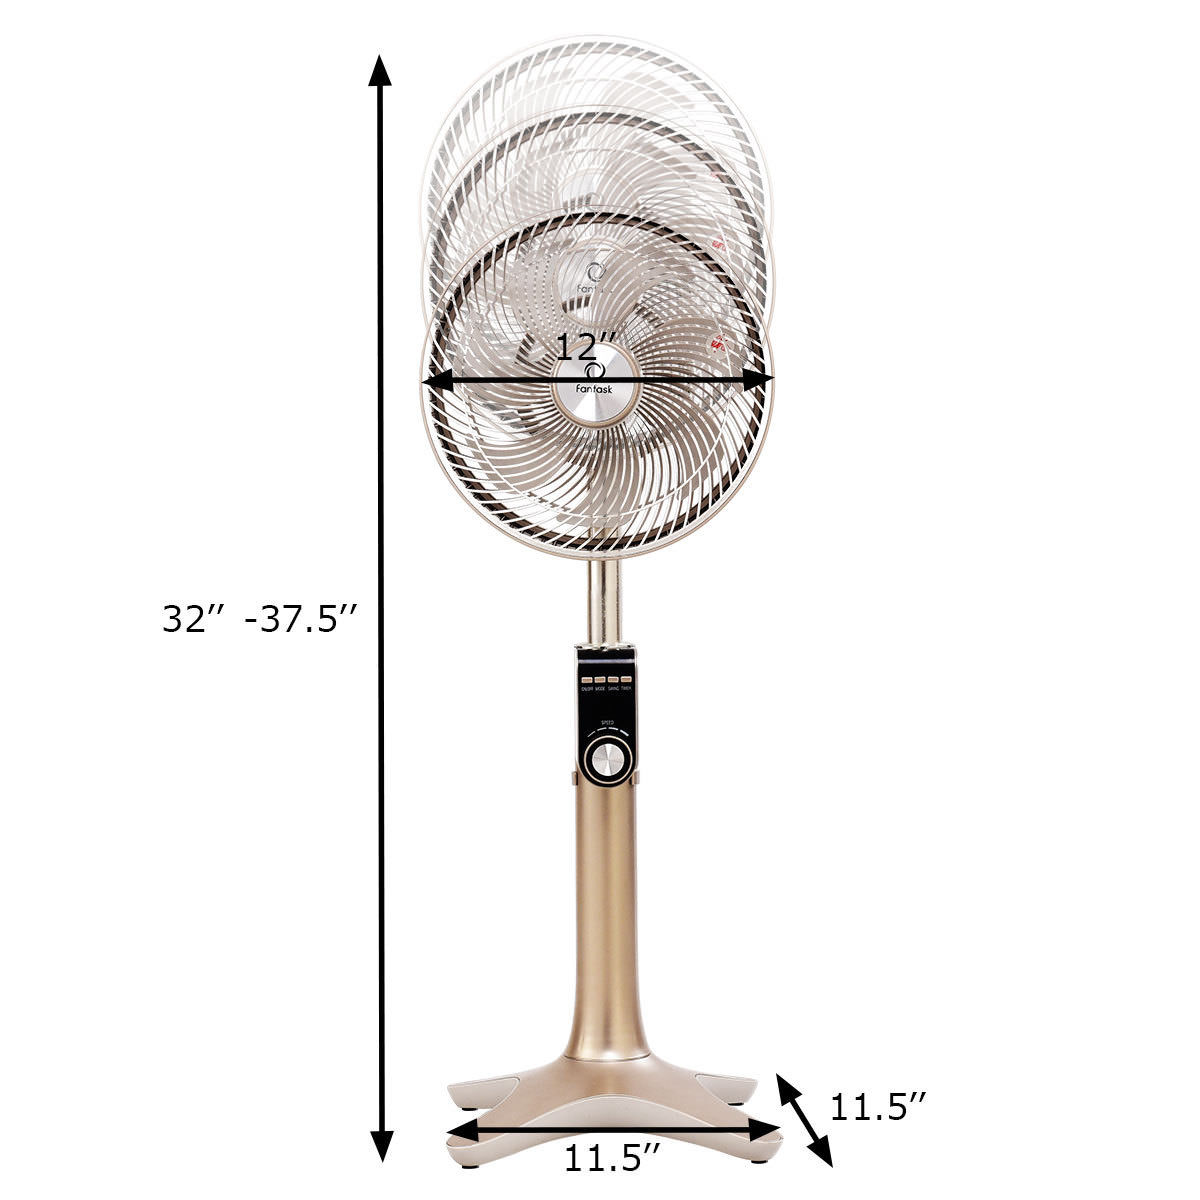 10'' Pedestal Fan 7 Blades 24-Speed 3 Mode Height Adjustable Remote Control - image 6 of 10